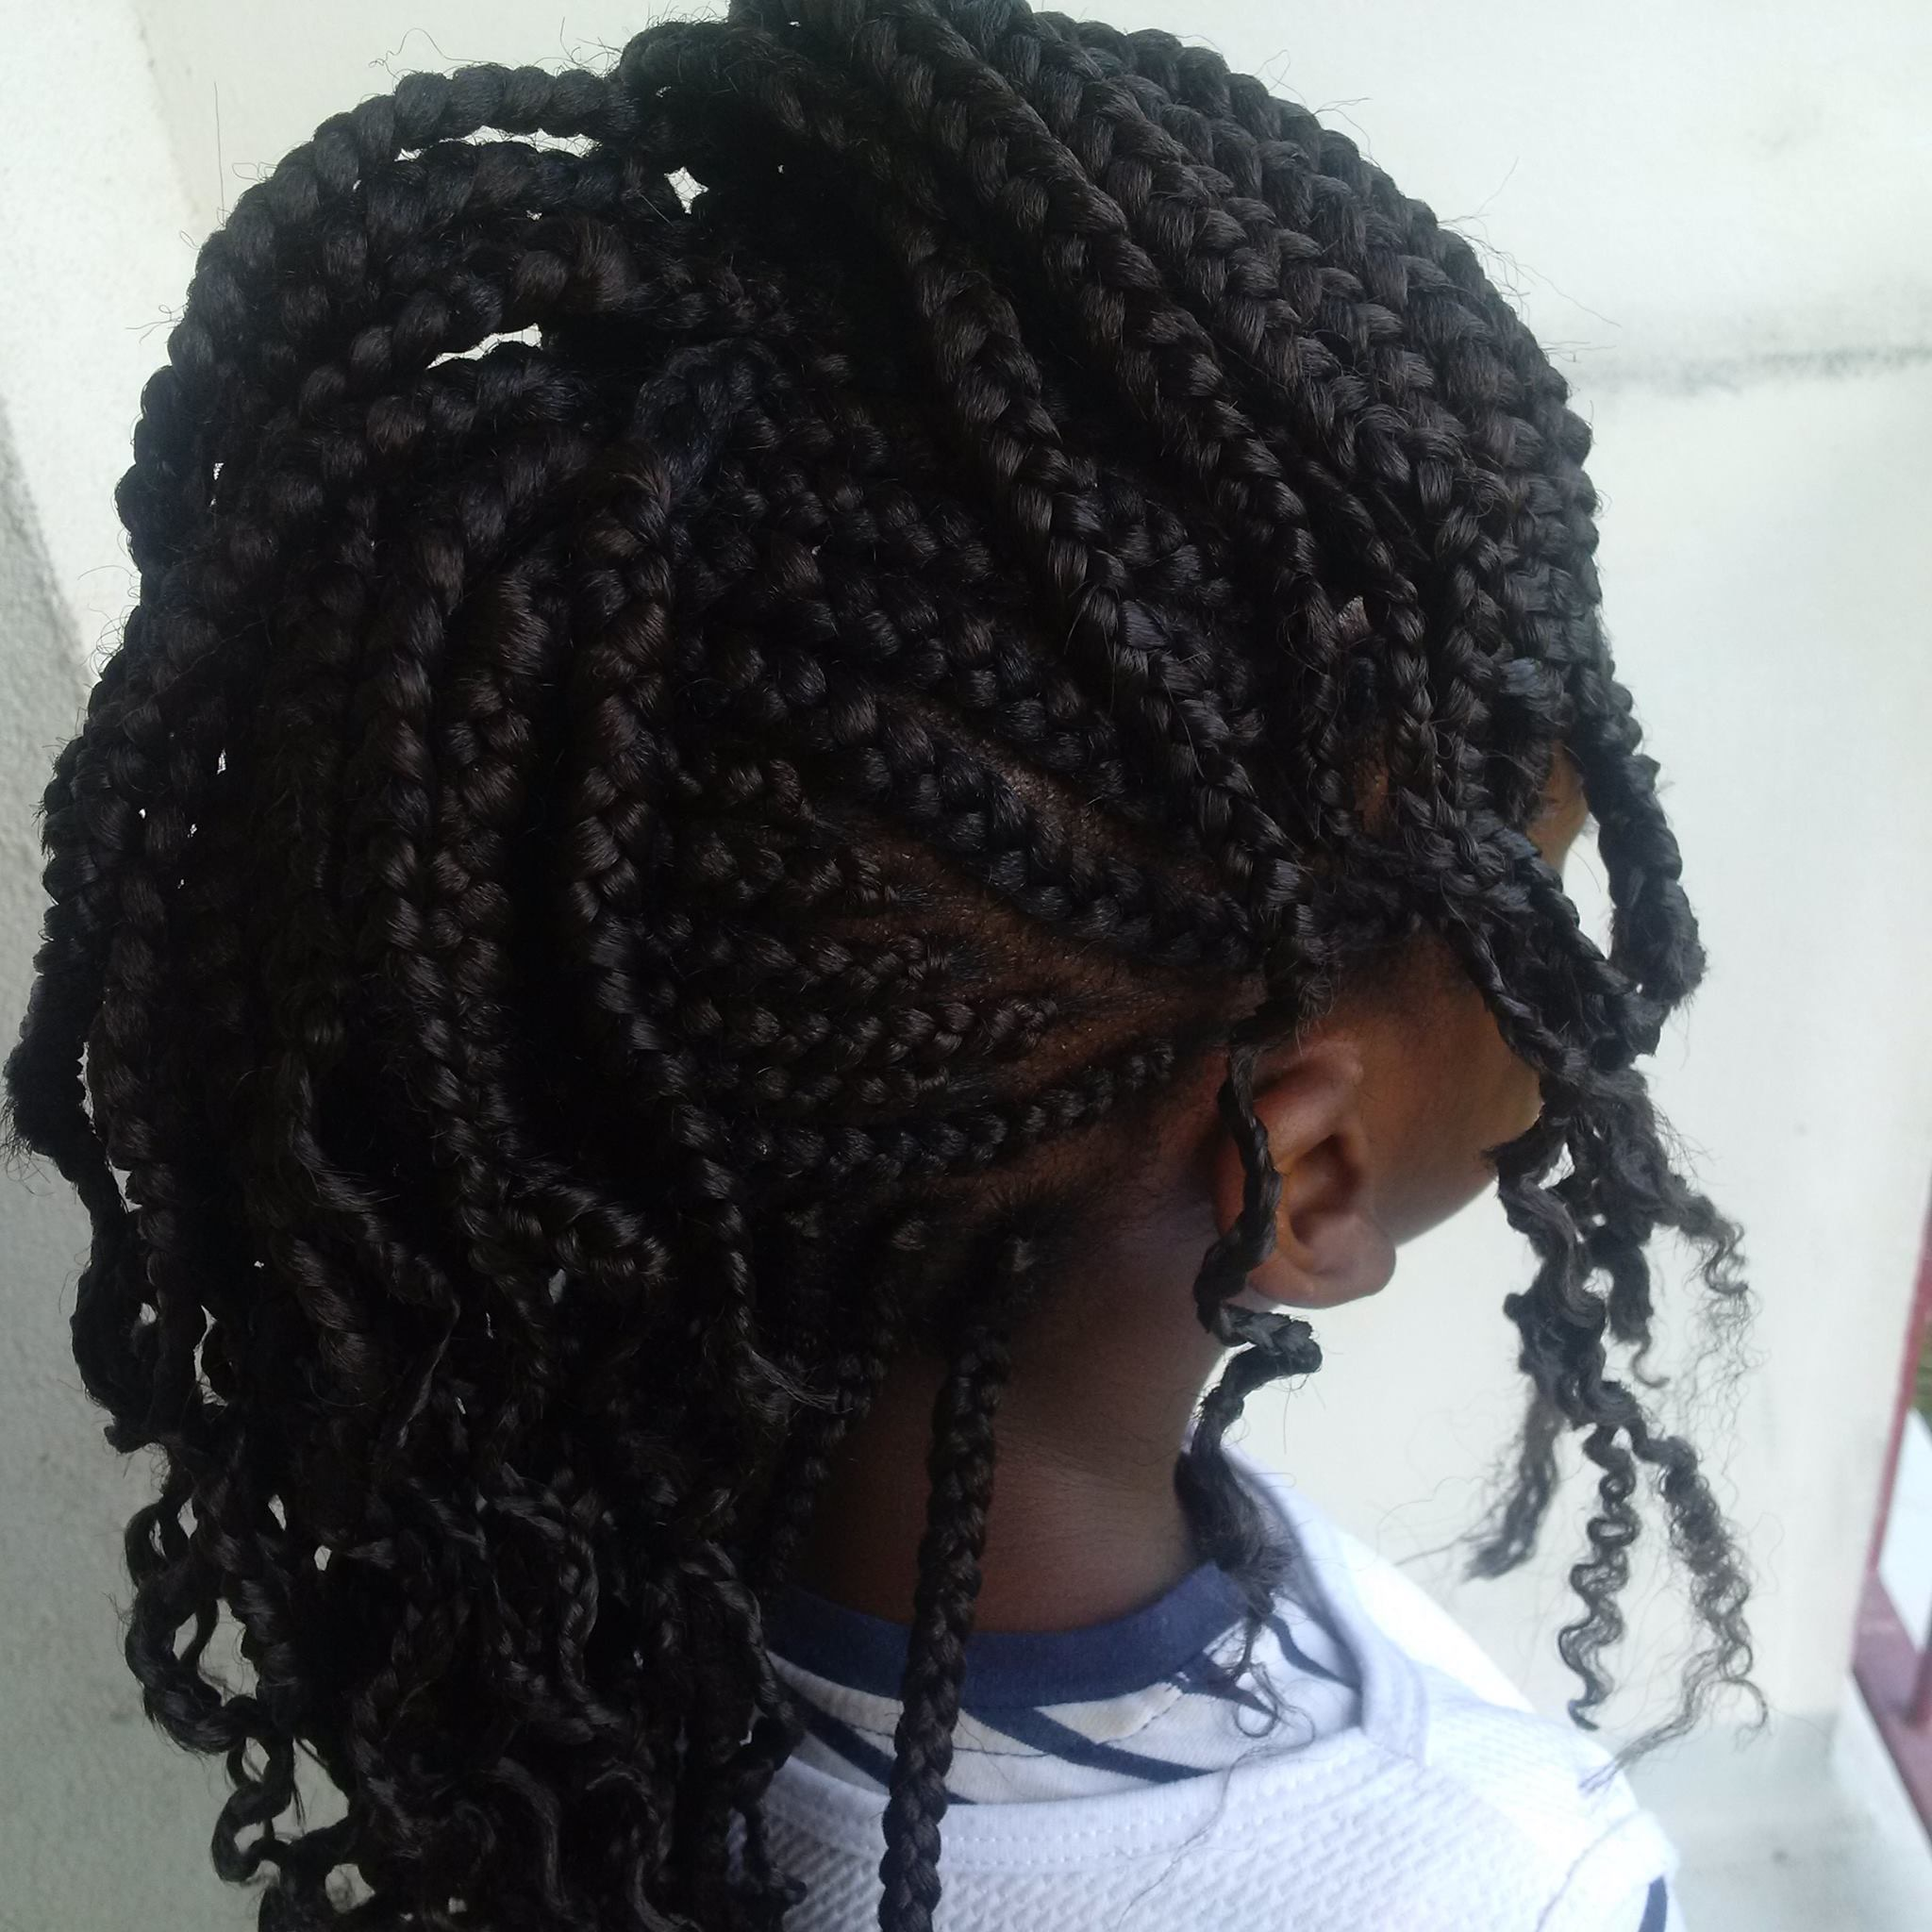 salon de coiffure afro tresse tresses box braids crochet braids vanilles tissages paris 75 77 78 91 92 93 94 95 WVYEFDLG